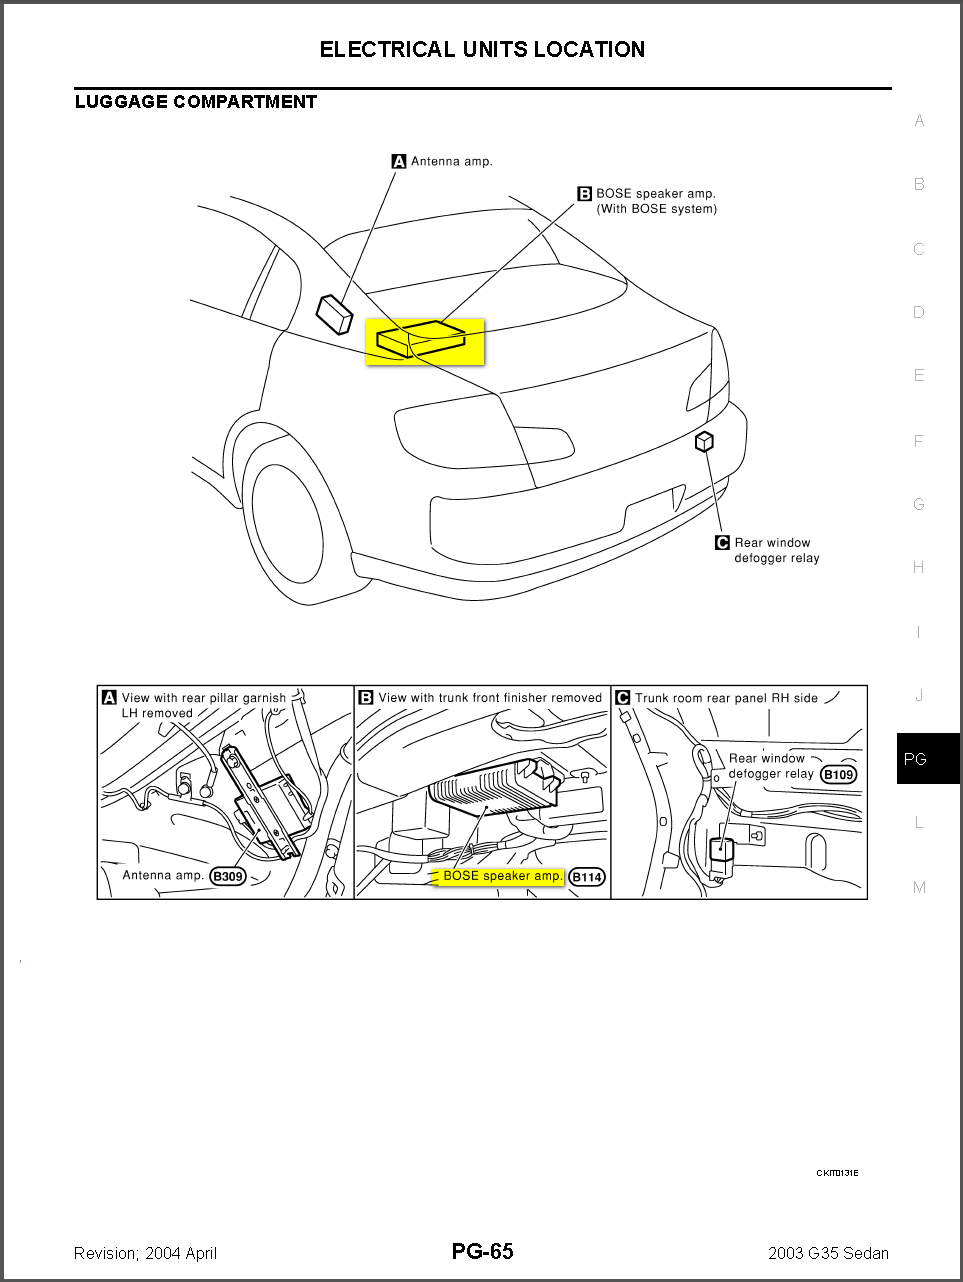 03 g35 bose stereo no volume but everything else works? infiniti g35 coupe wiring diagram #6